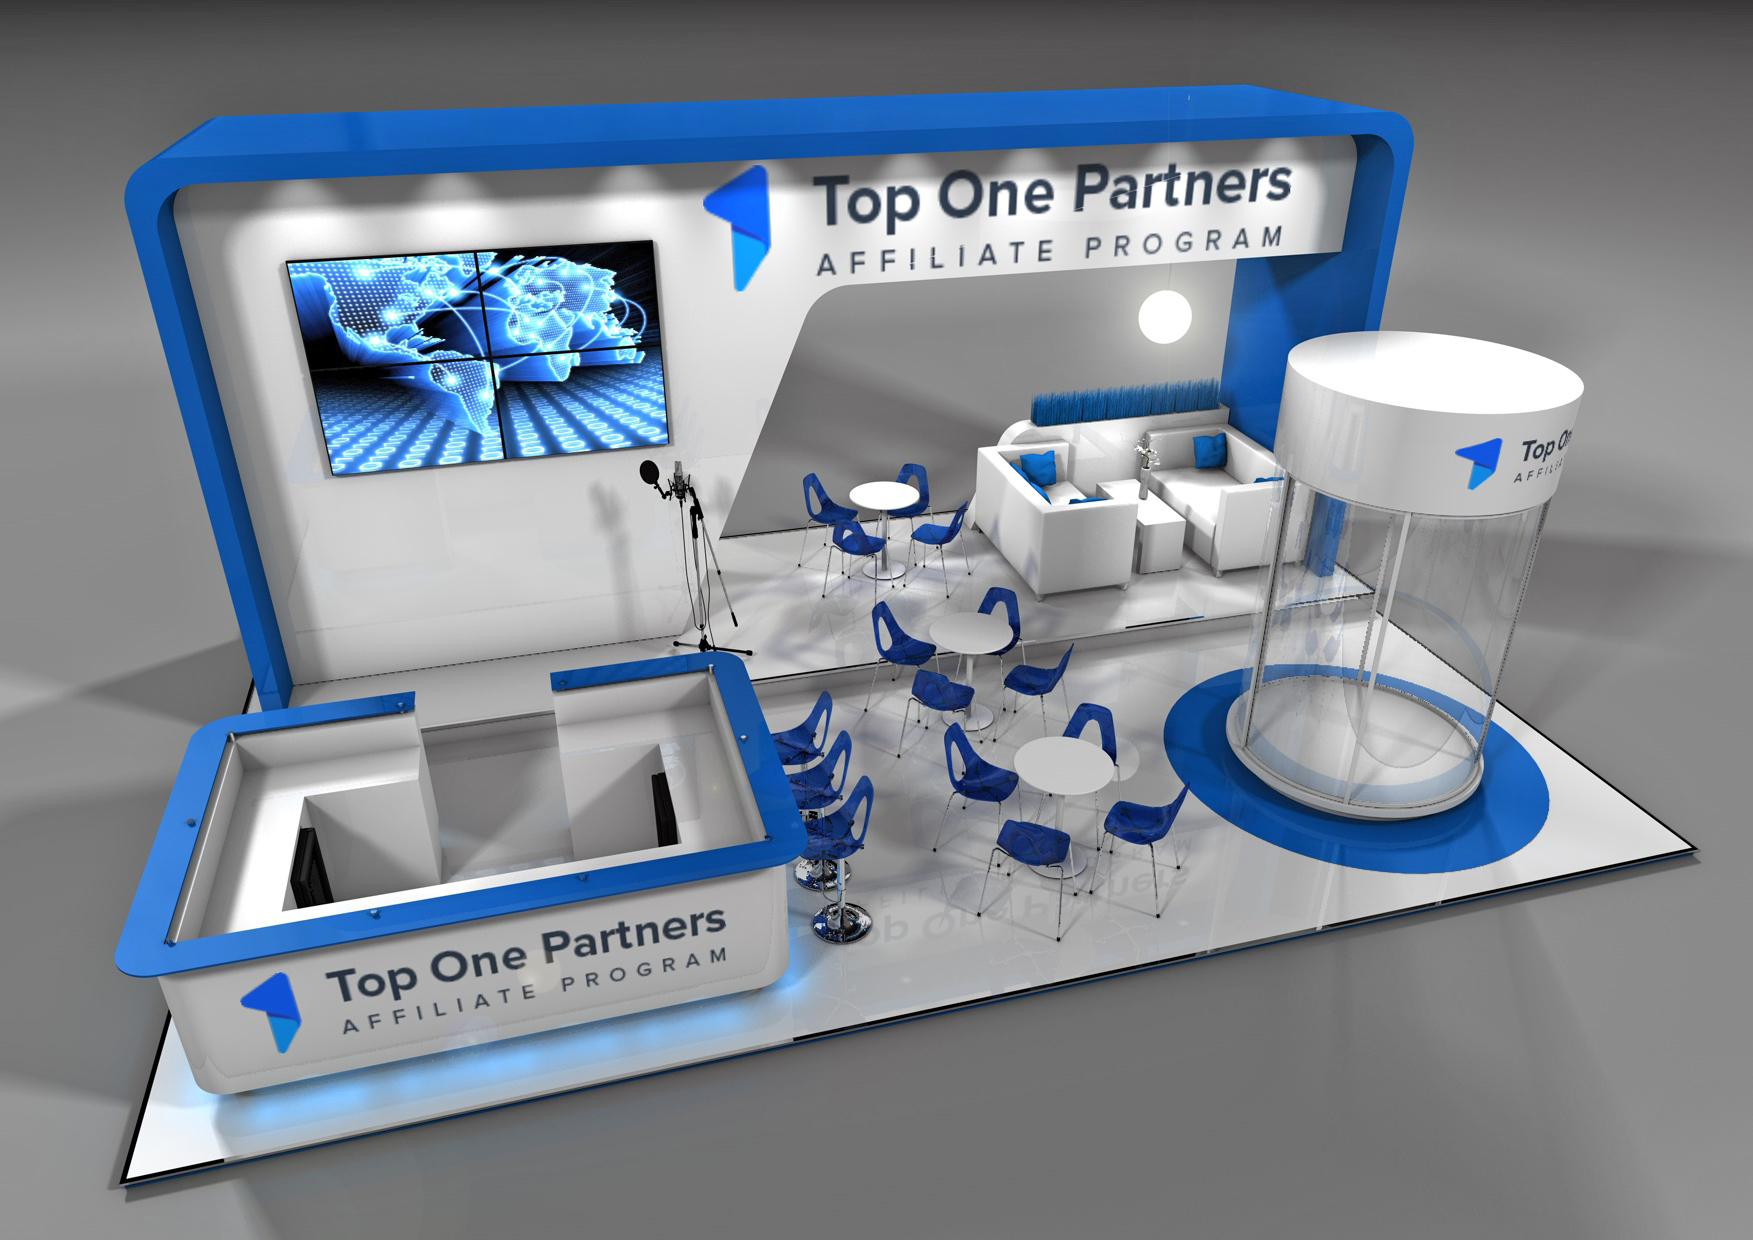 Top One Partners 9m x 6m